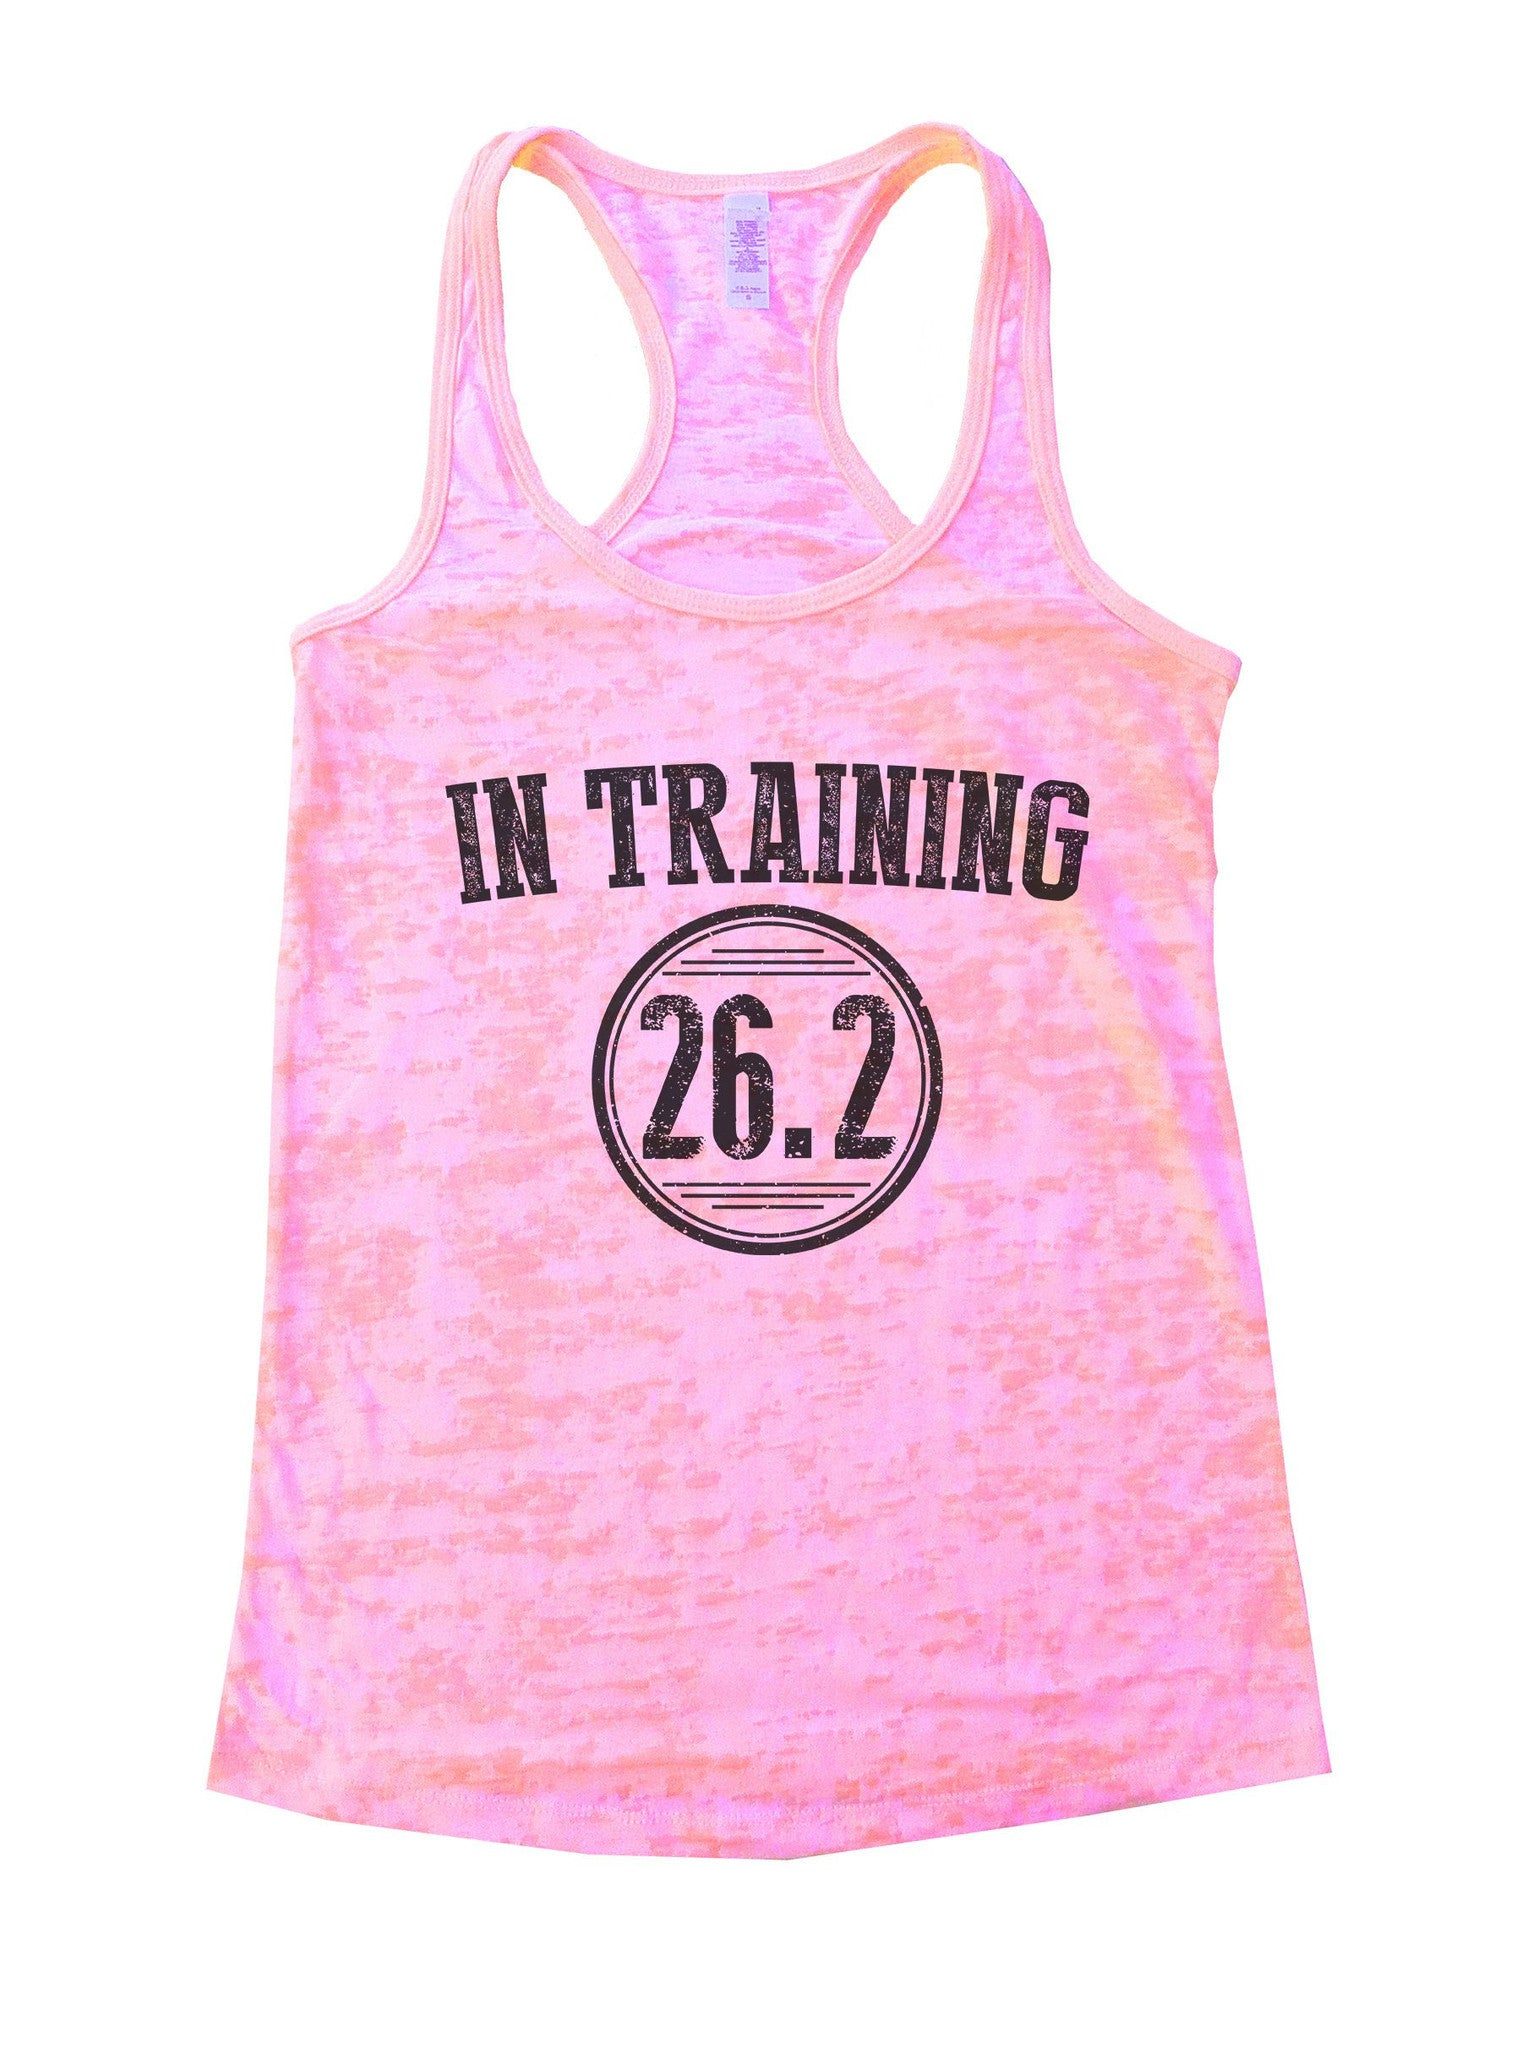 In Training 26.2 Burnout Tank Top By BurnoutTankTops.com - 1037 - Funny Shirts Tank Tops Burnouts and Triblends  - 2